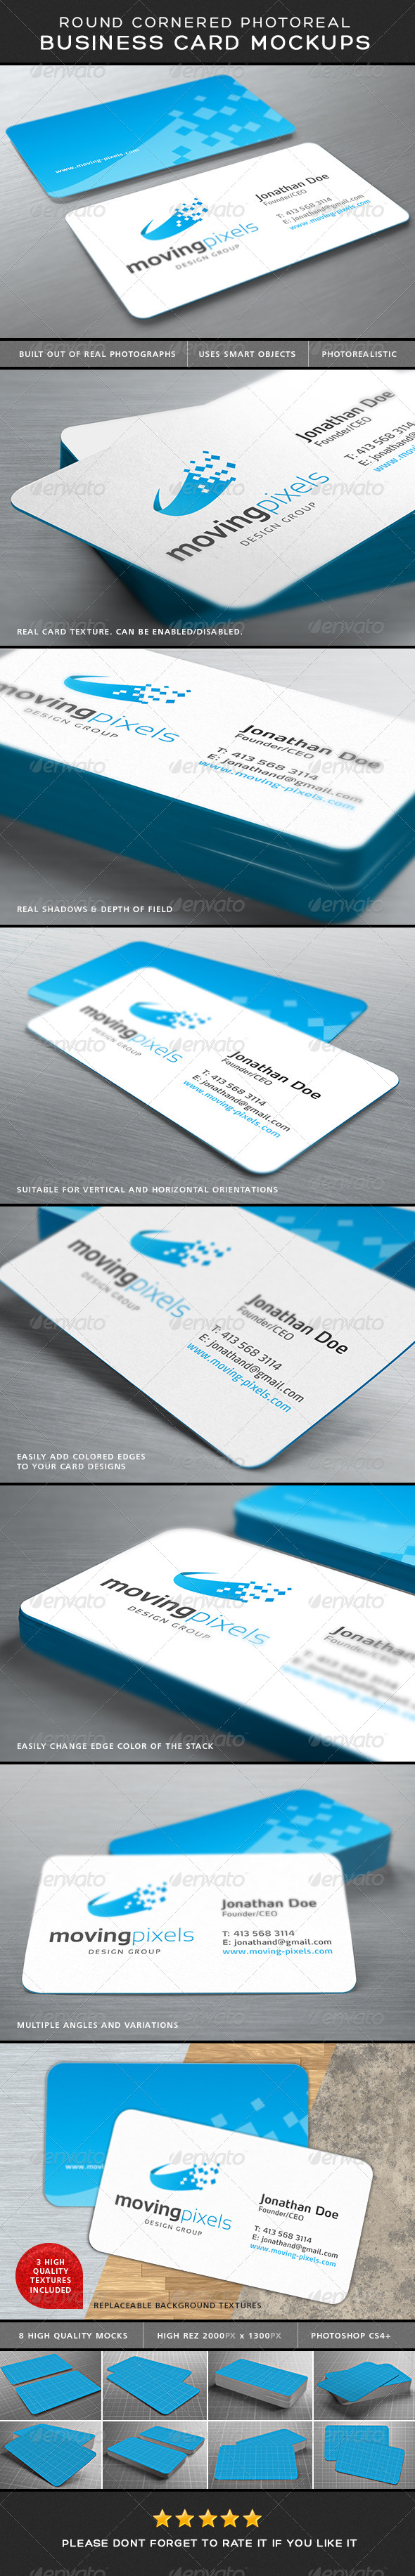 GraphicRiver Photorealistic Business Card Mockup Round Corners 7551336